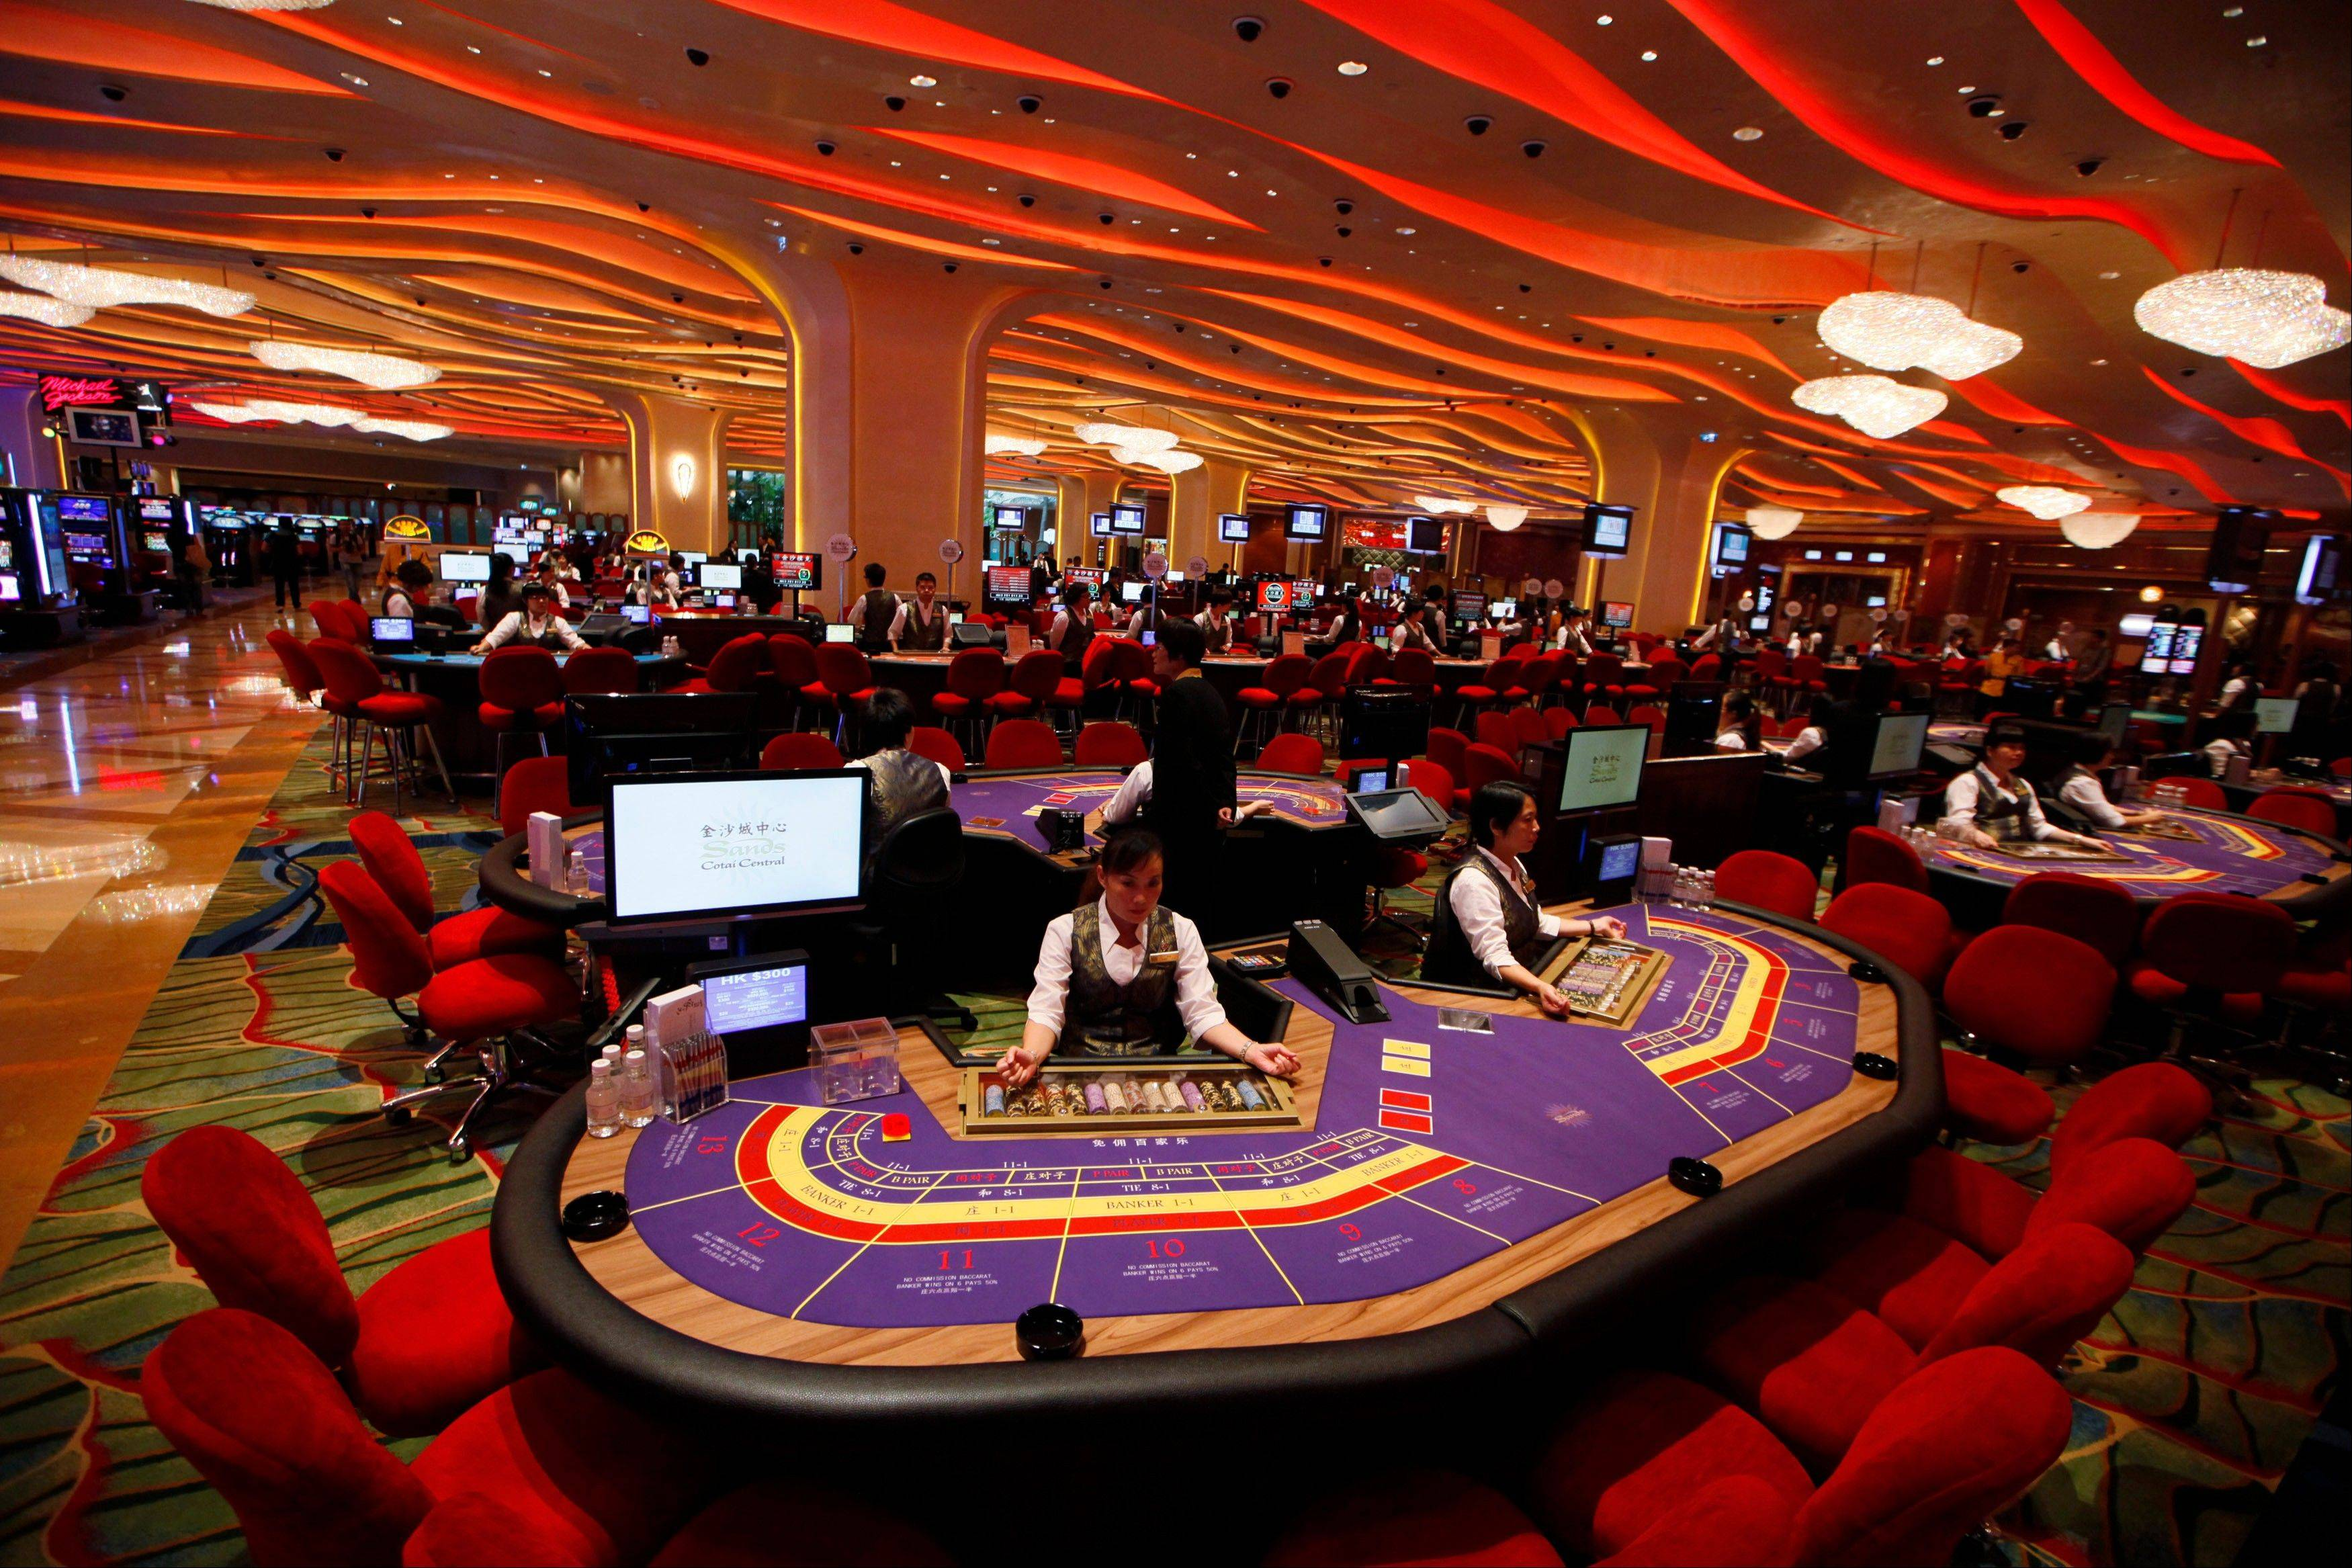 Croupiers sit at a baccarat gaming table inside a casino during the opening day of Sheraton Macao Hotel at the Sands Cotai Central in Macau. Macau is in the midst of one of the greatest gambling booms the world has ever known.